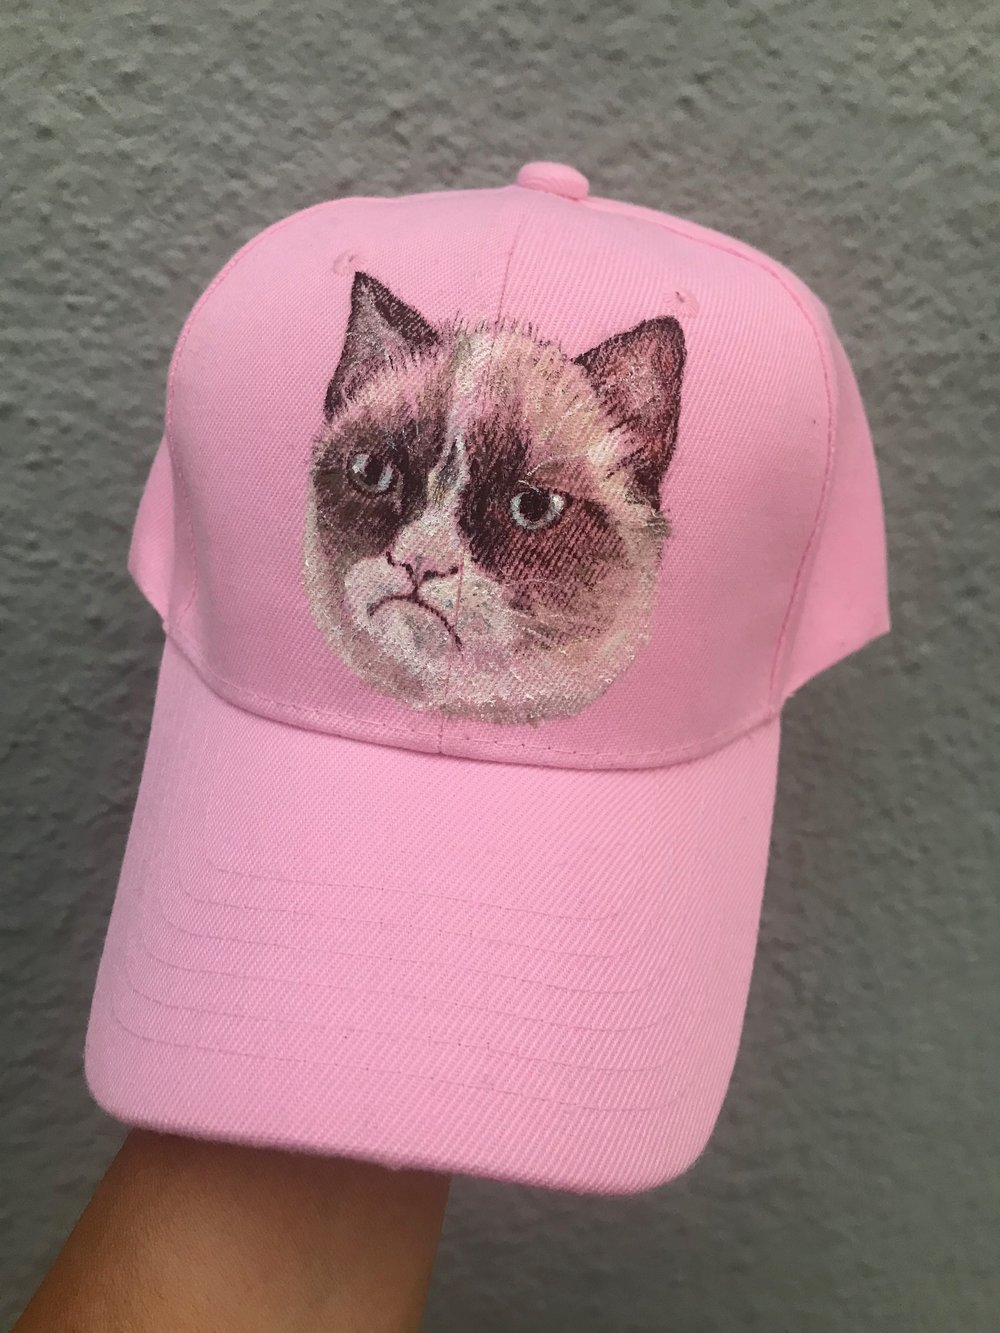 Day 313. Grumpy Cat on a Hat